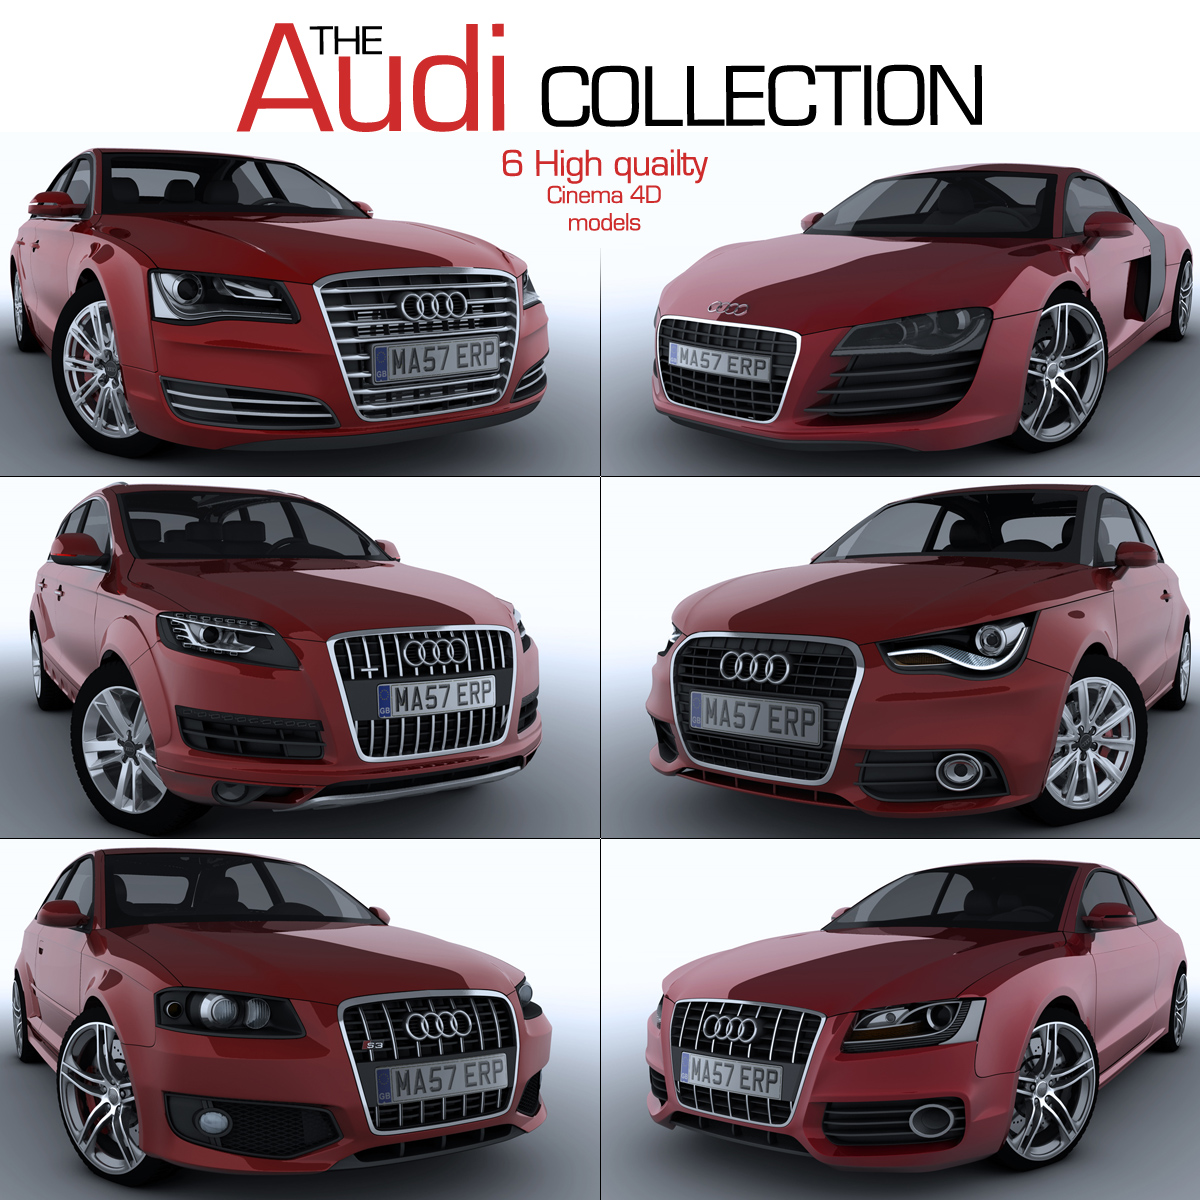 The Audi Collection By TomD On DeviantArt - Audi collection